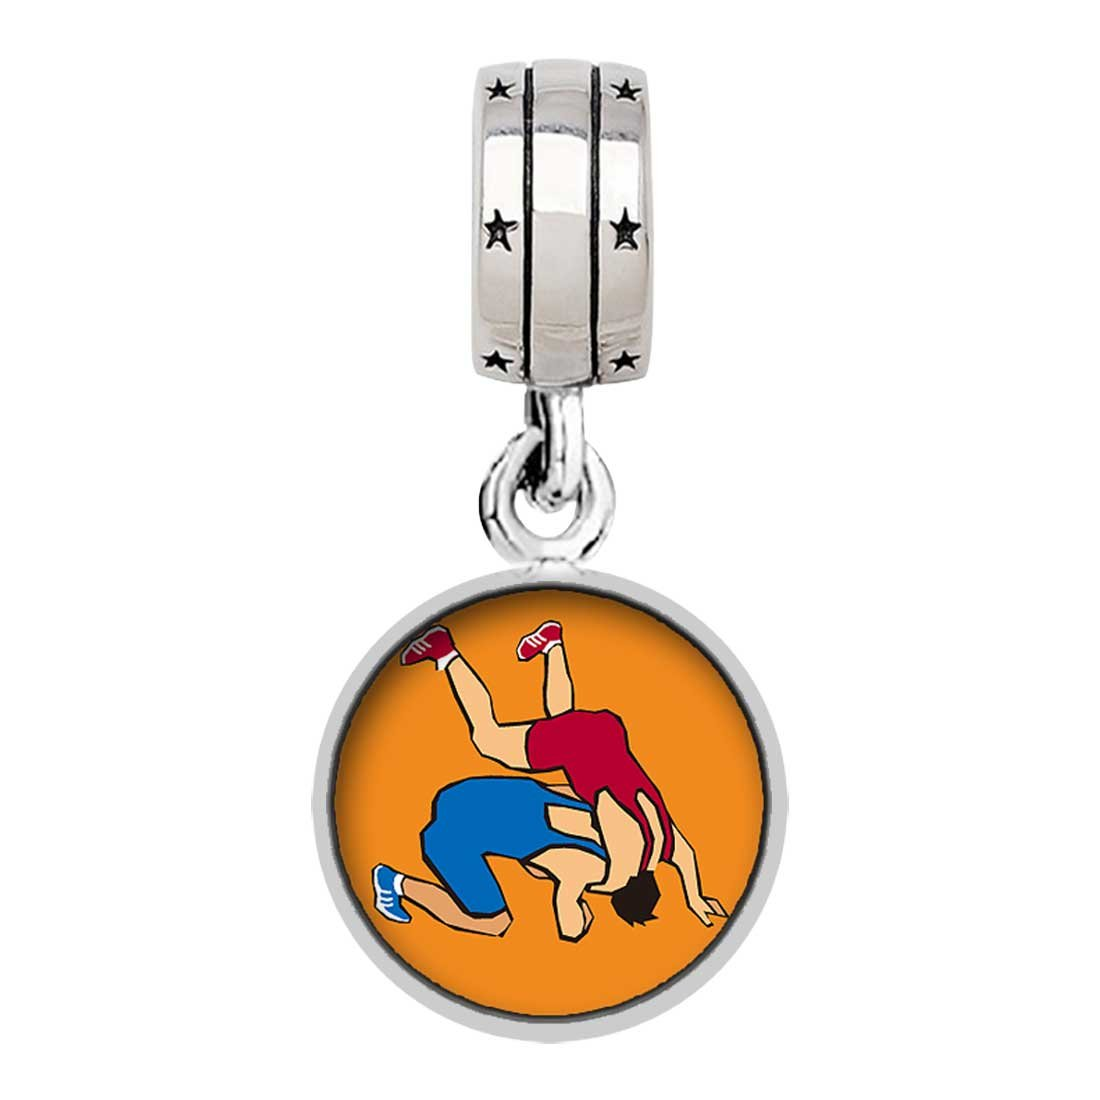 Olympics Wrestling posture Photo ''With God All Things Are Possible'' Religious Dangle Charm Bracelets